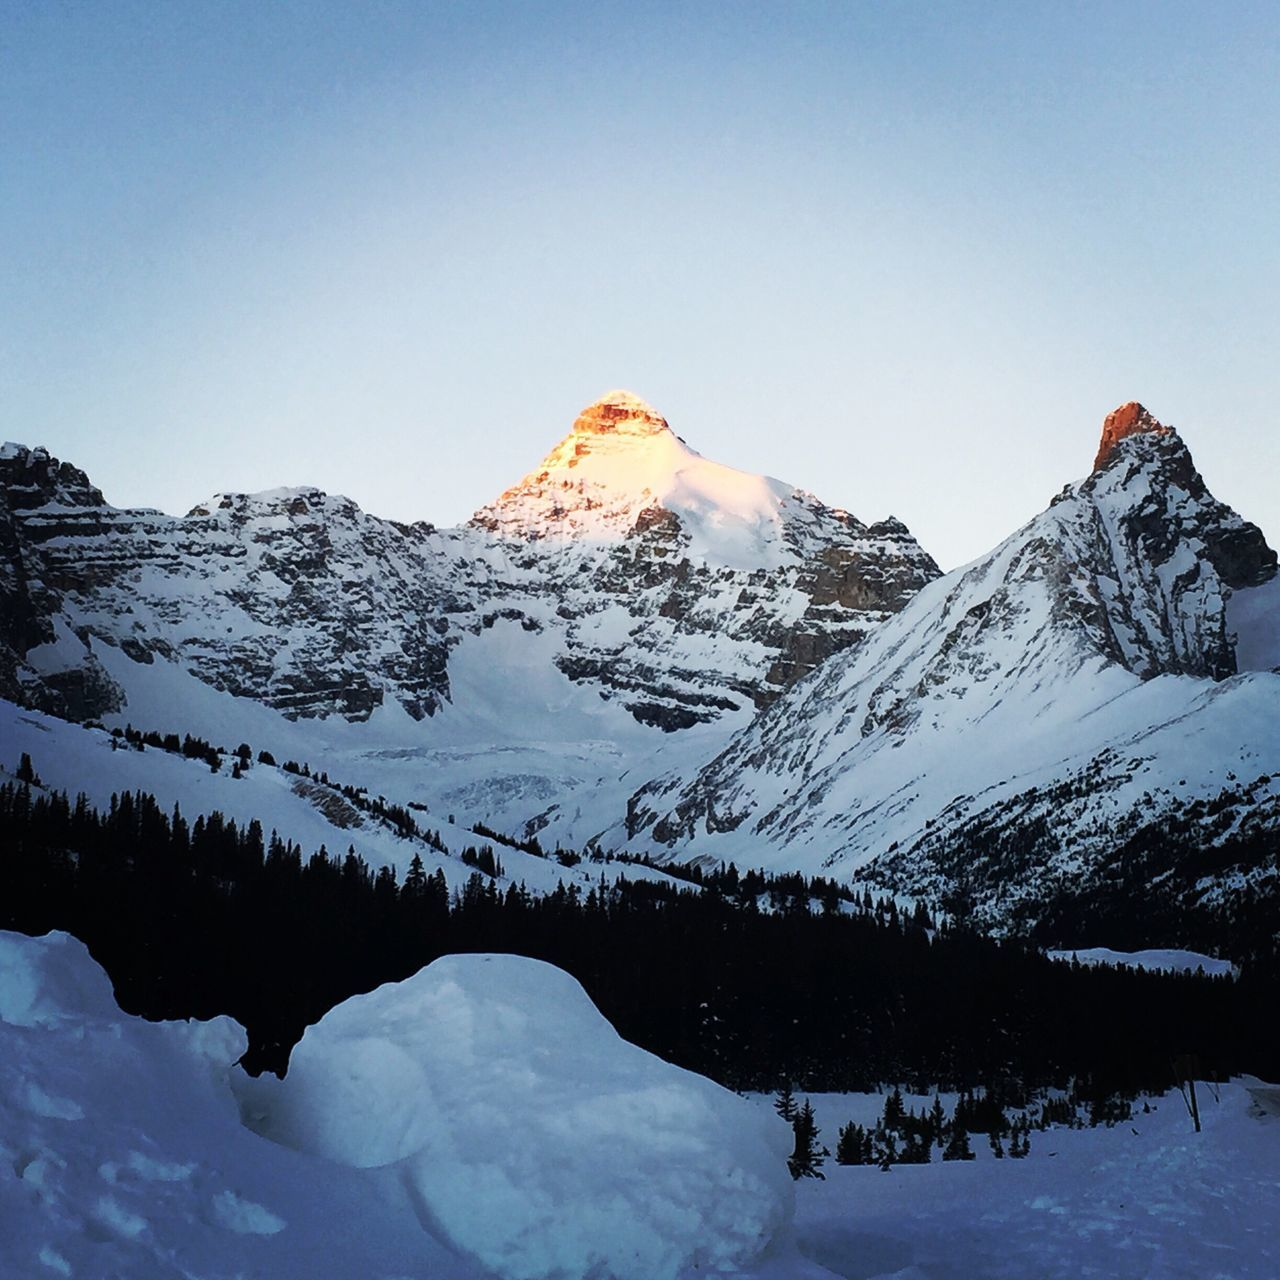 Sunrise falls on the rockie mountains ❤️ Sunshine ☀ Beautiful Nature Snowcapped Mountain Snowfall Sun Hitting Mountain Peak Sunrisephotography Mountain View Canadian Winter Canadian Rockies  Best Trip Ever! Holiday Sun Hitting The Peaks Golden Mountain Peak Finding New Frontiers